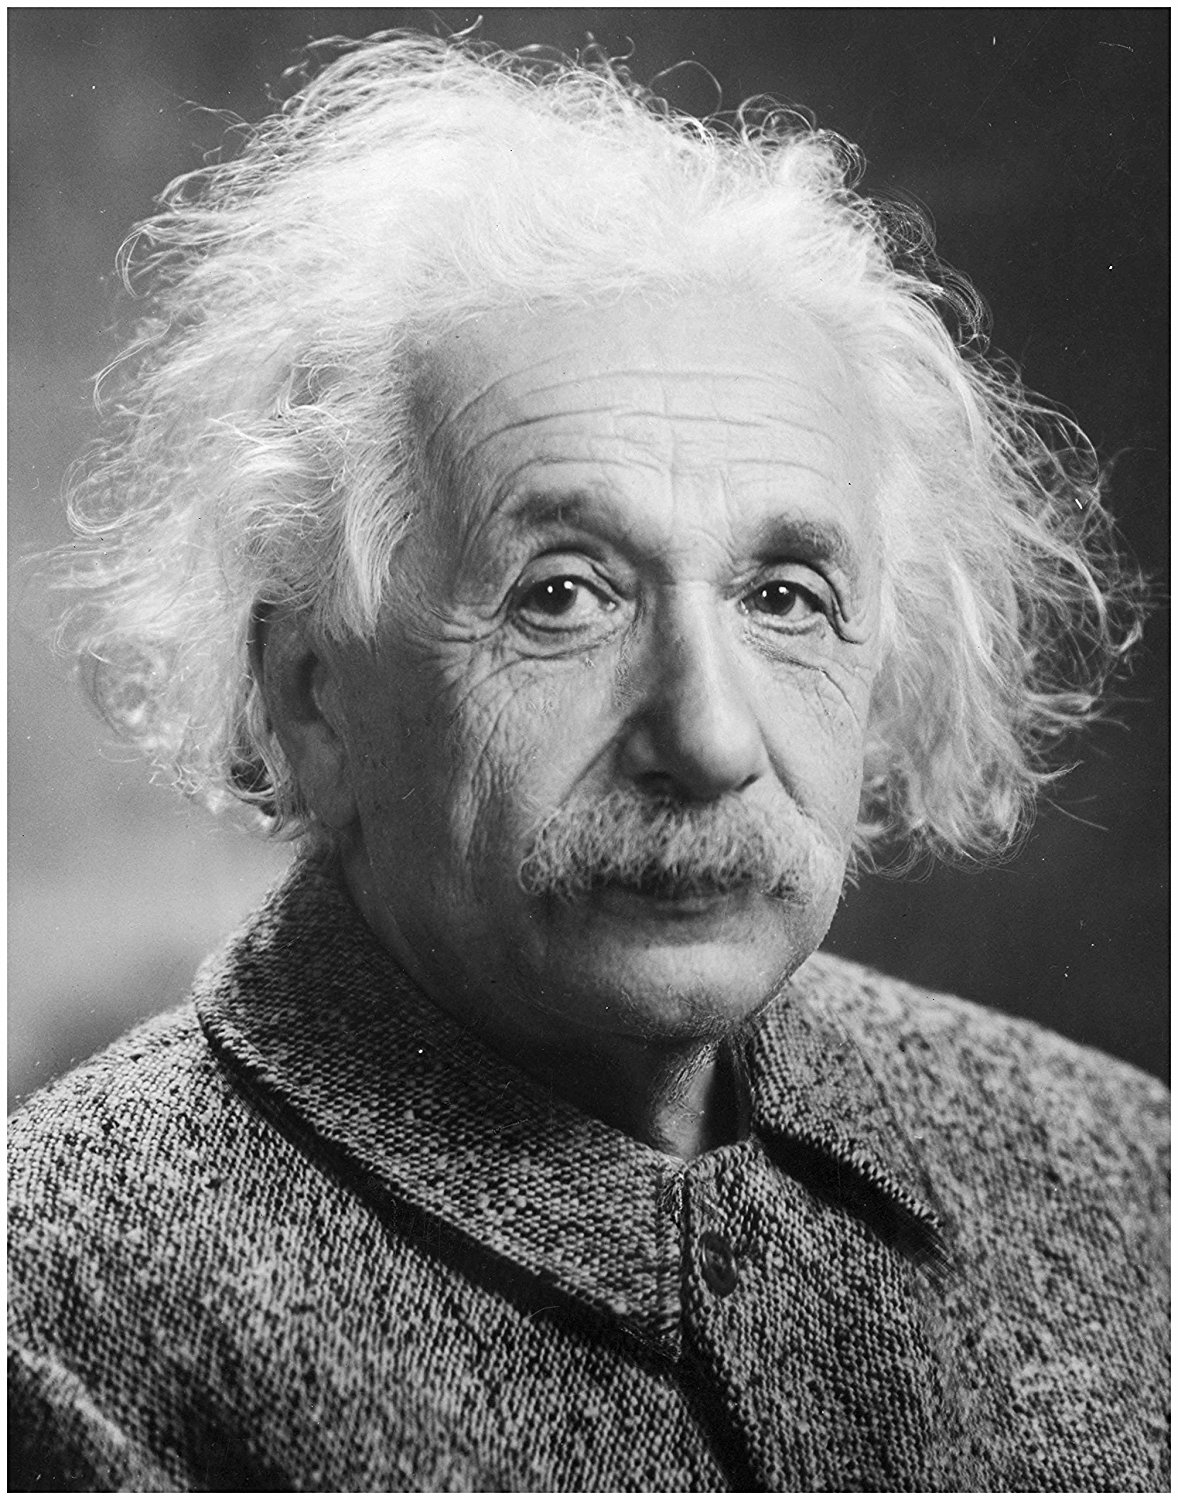 albert einstein 4 essay Albert einstein: his theories this essay will tell of the theories that albert einstein had and came up with will he was alive  albert einstein tried to find a relationship between gravity and electromagnetism this relationship, if found, would be called the unidentified field theory.